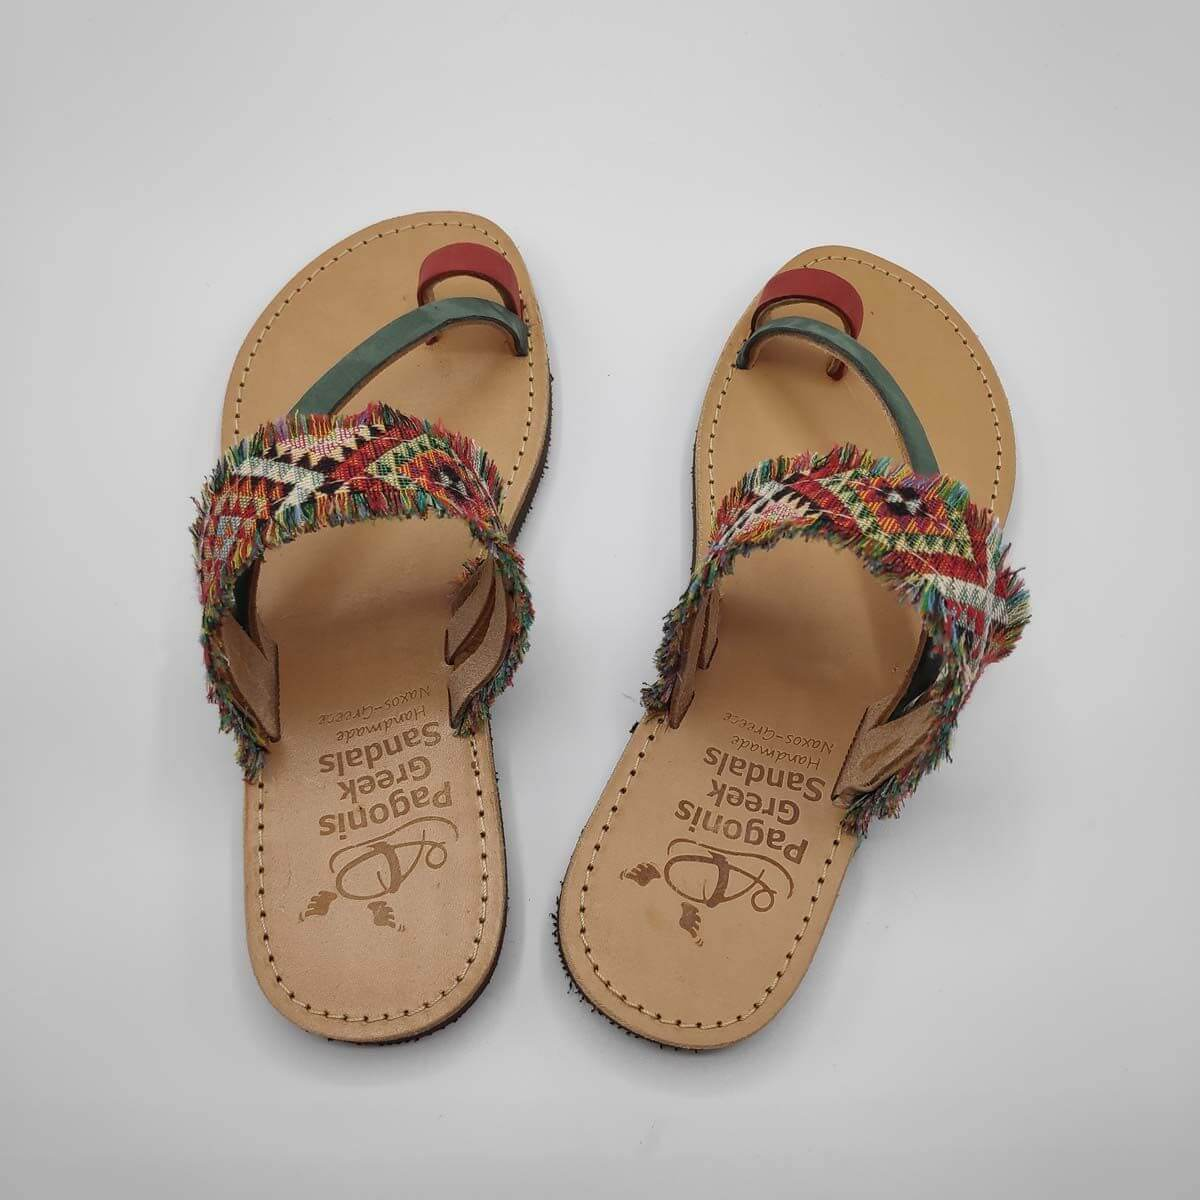 Pink & Blue Fabric & Leather Boho Sandals with Fringes | Comi Boho | Pagonis Greek Sandals